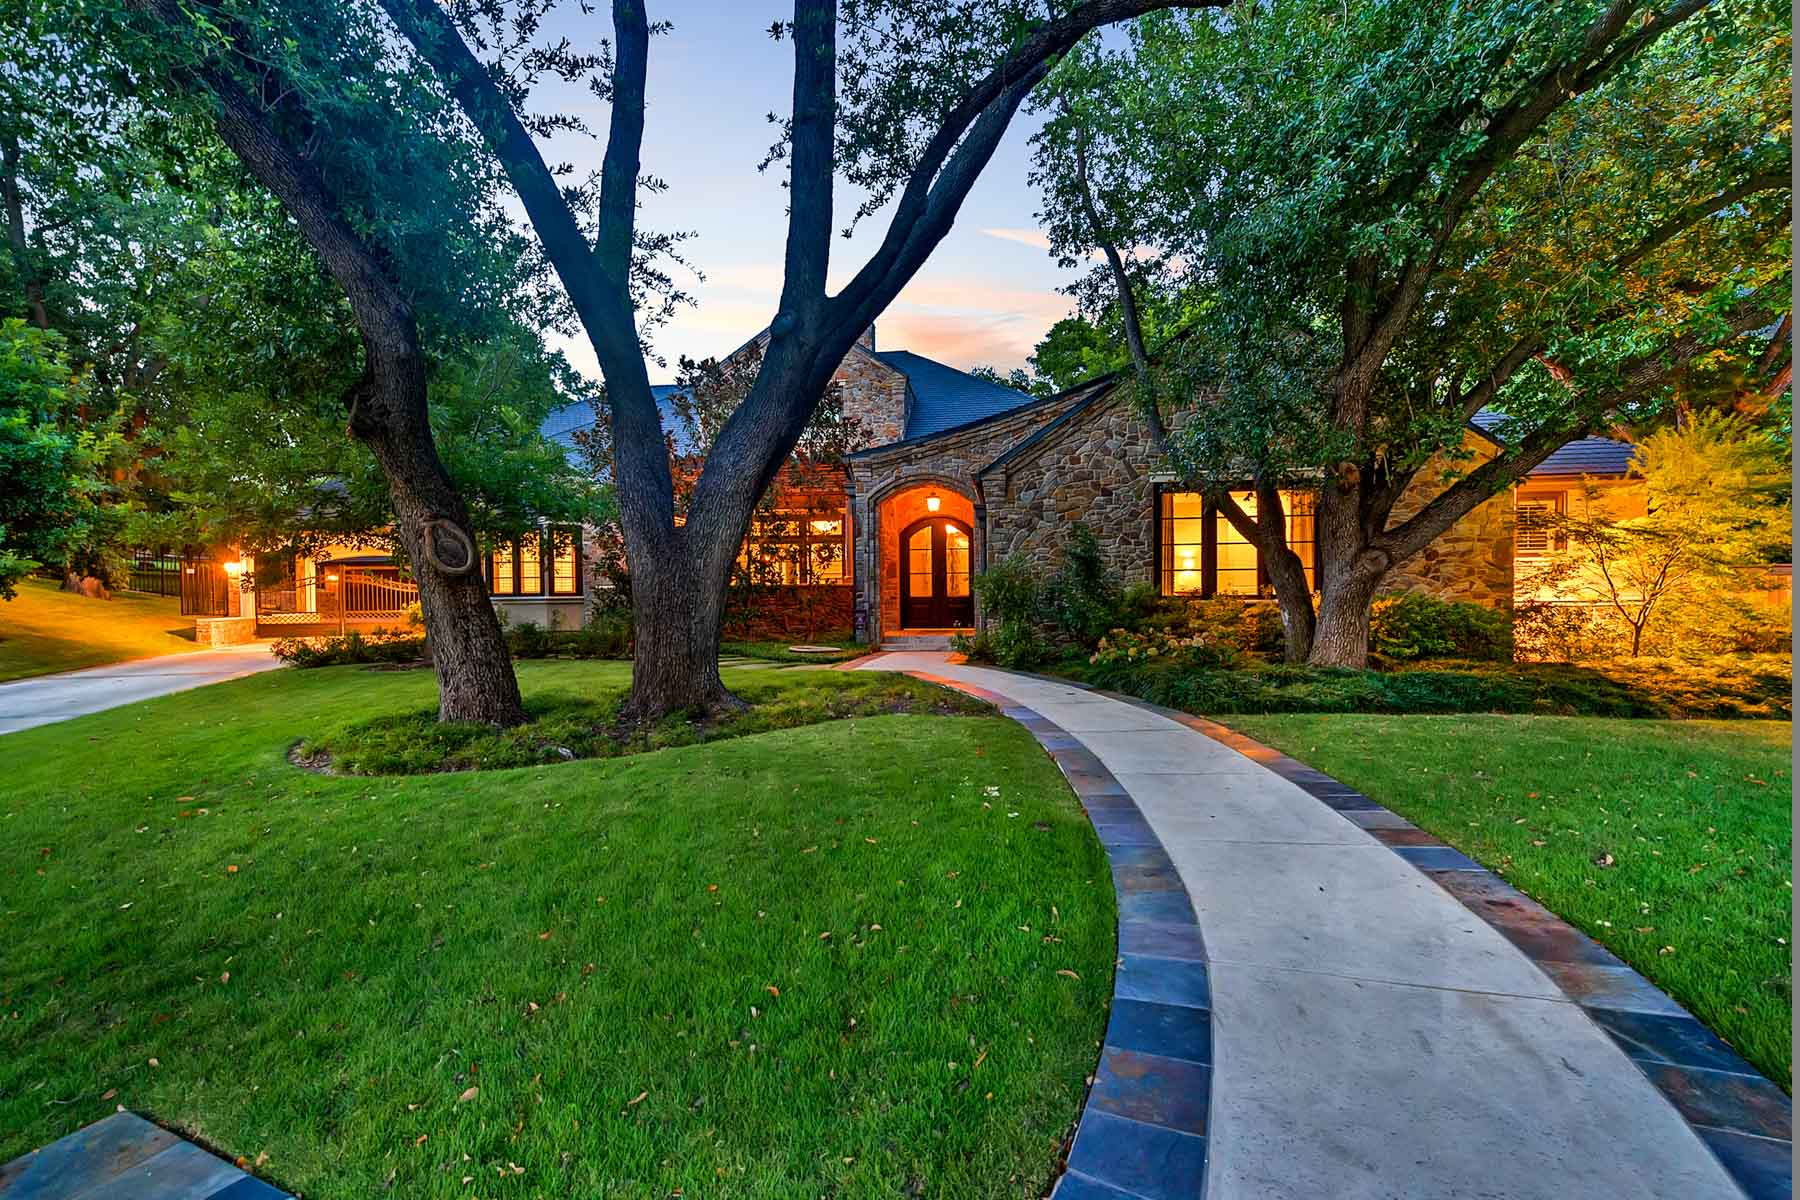 Villa per Vendita alle ore Ridgmar Traditional 1701 Dakar Rd E Fort Worth, Texas, 76116 Stati Uniti